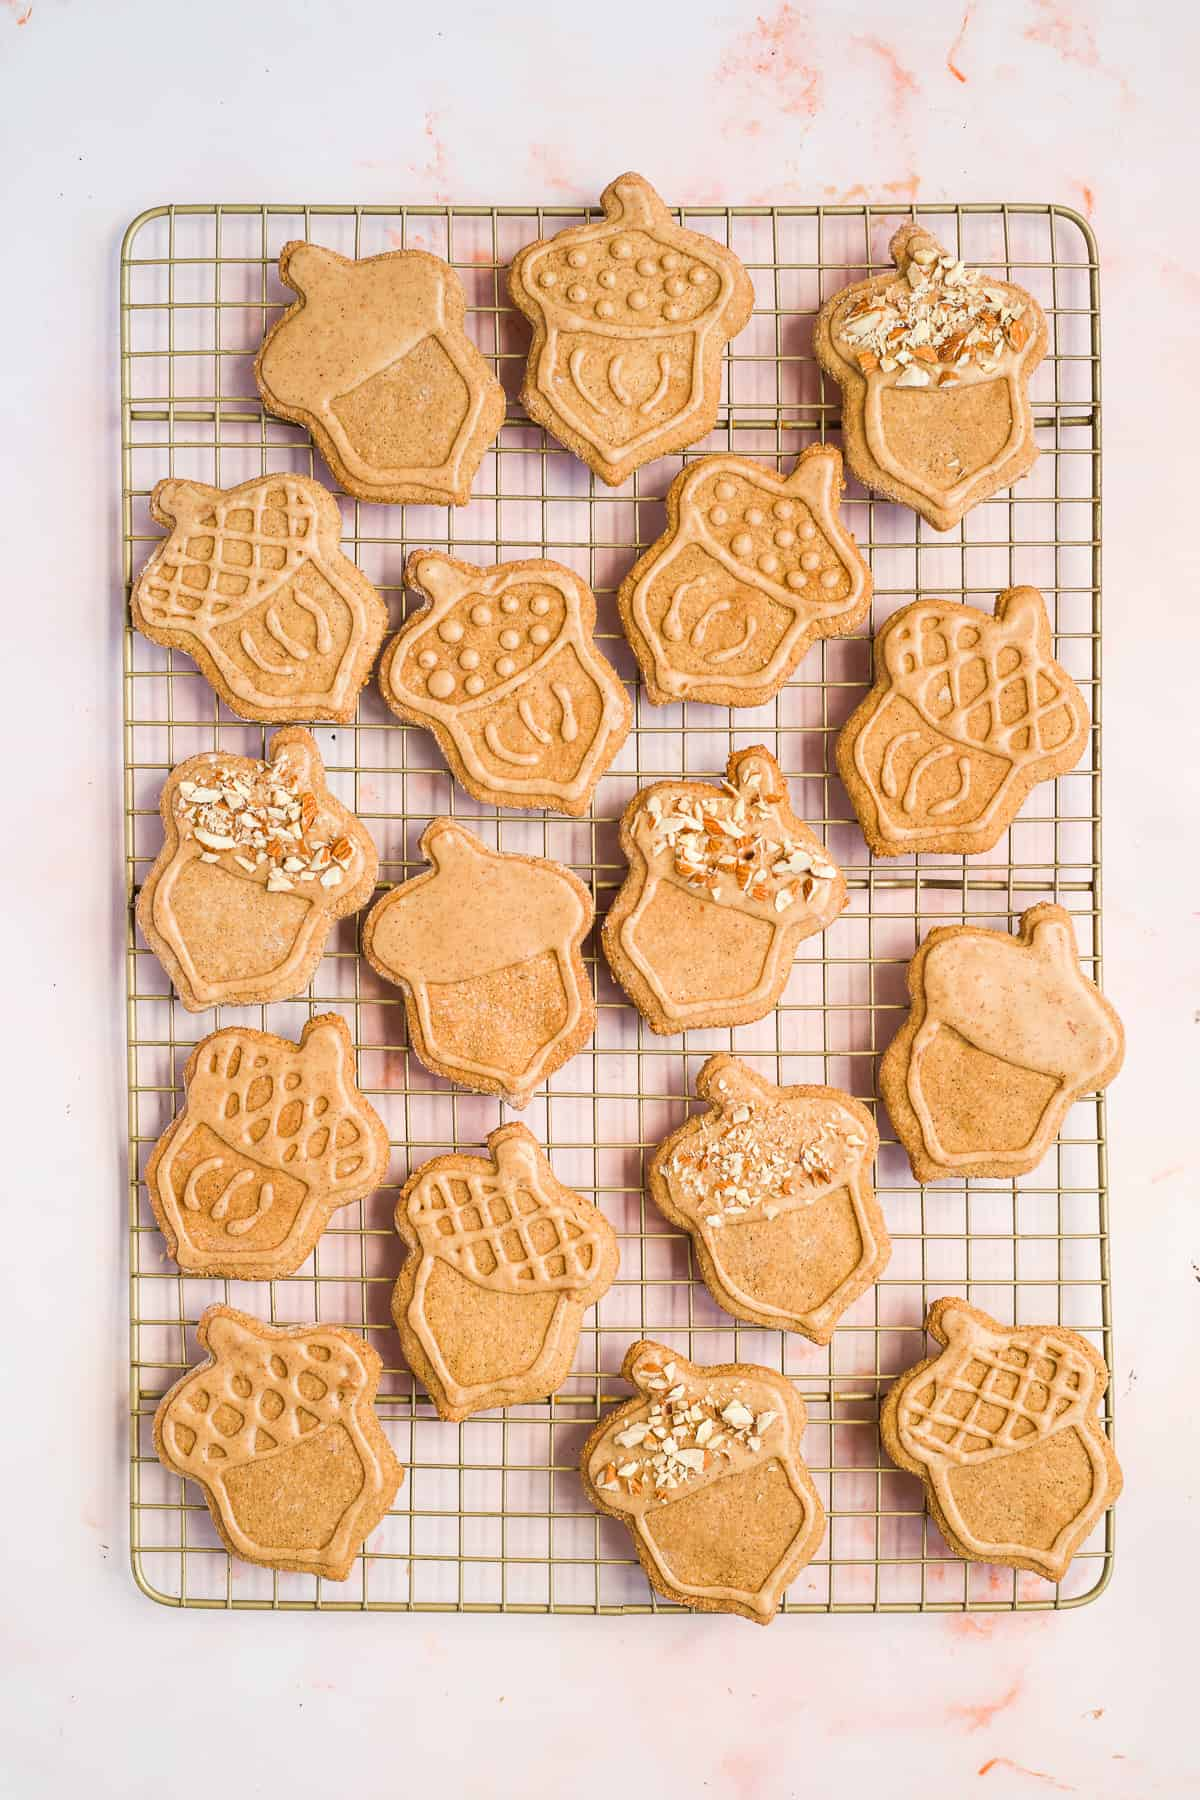 Overhead photo of a full batch of freshly baked Maple Peanut Butter Cut-Out Sugar Cookies on a  gold cooling rack.  Cookies are in the shape of acorns and have been decorated and iced.